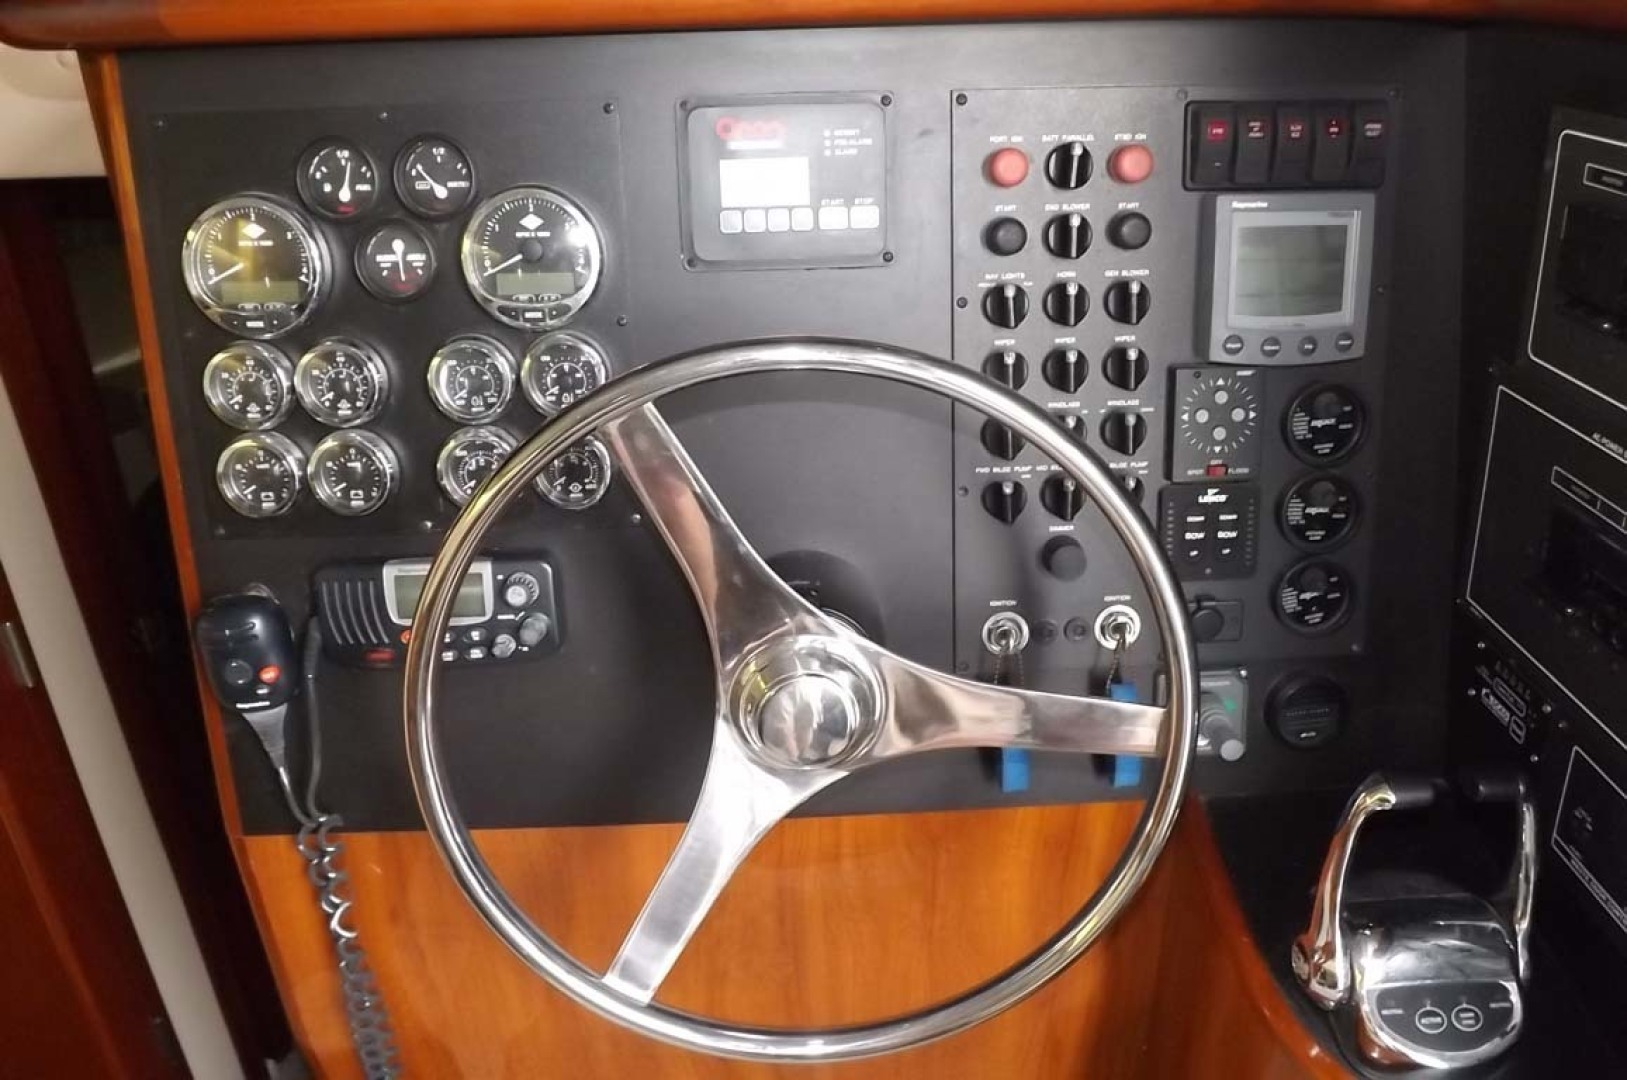 Bluewater Yachts-5200 2006 -Mount Pleasant-South Carolina-United States-Lower Helm Gauges, Switches-1412927 | Thumbnail